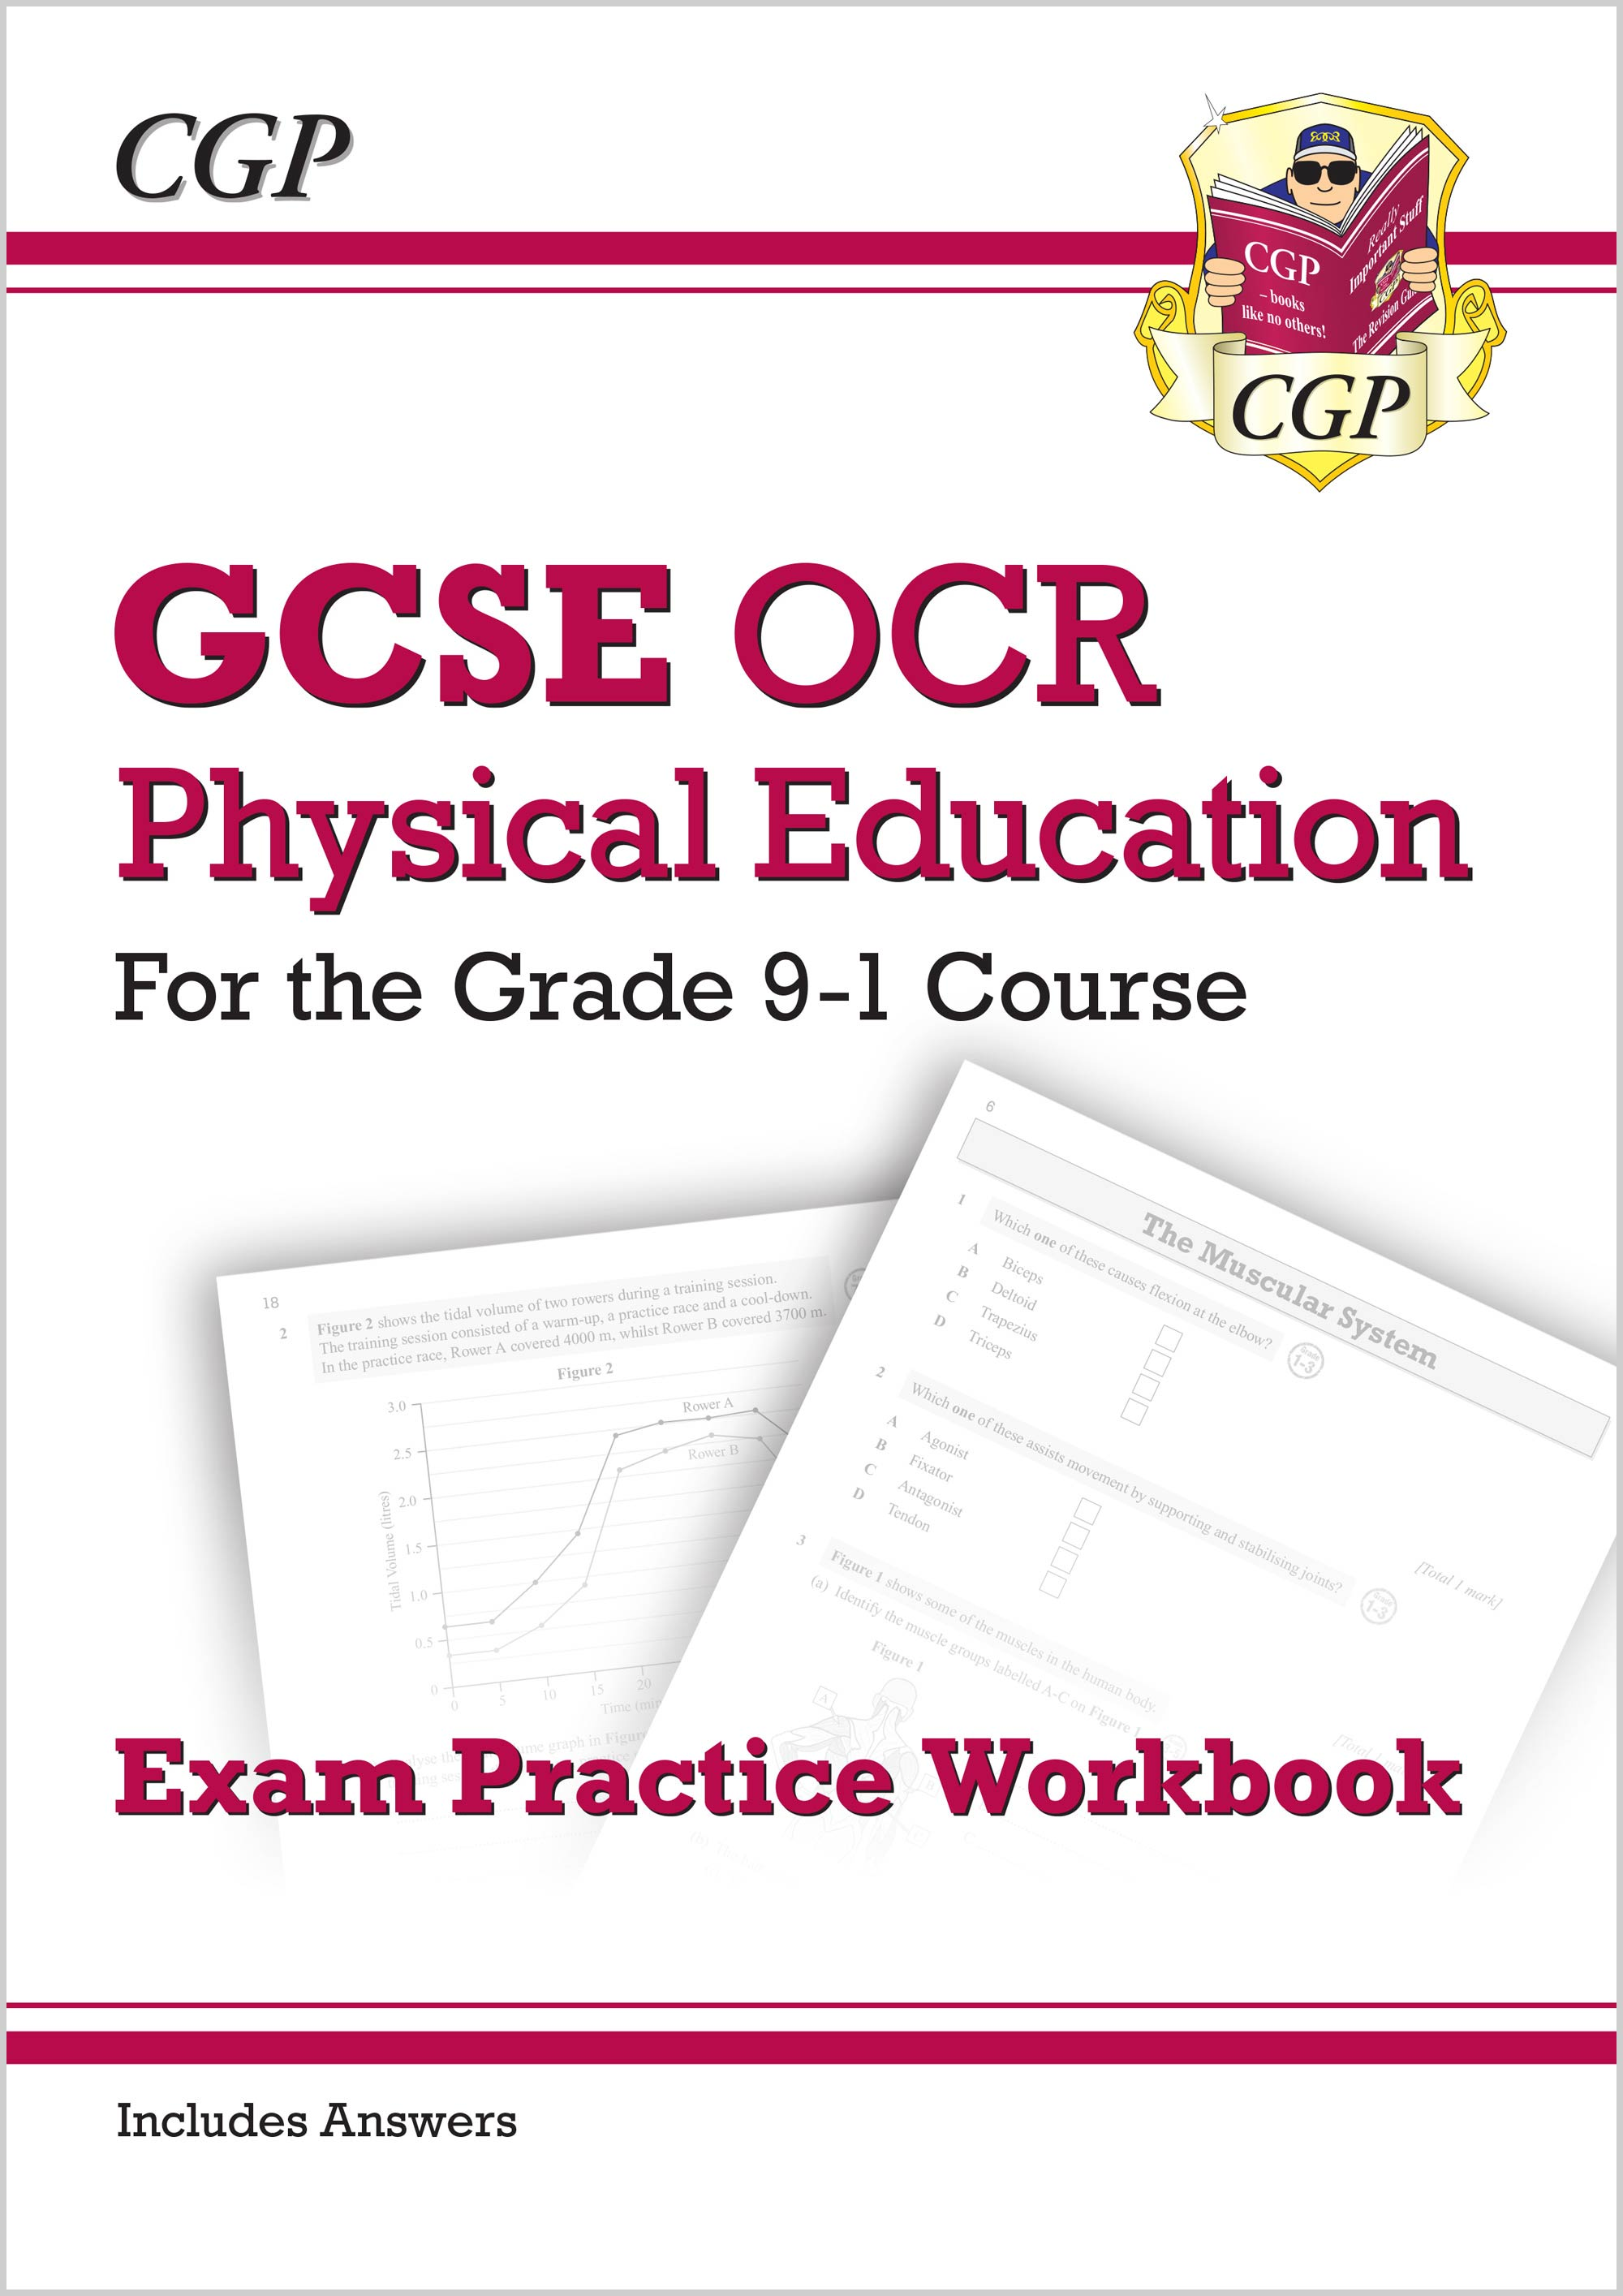 JRQ41 - GCSE Physical Education OCR Exam Practice Workbook - for the Grade 9-1 Course (includes Answ